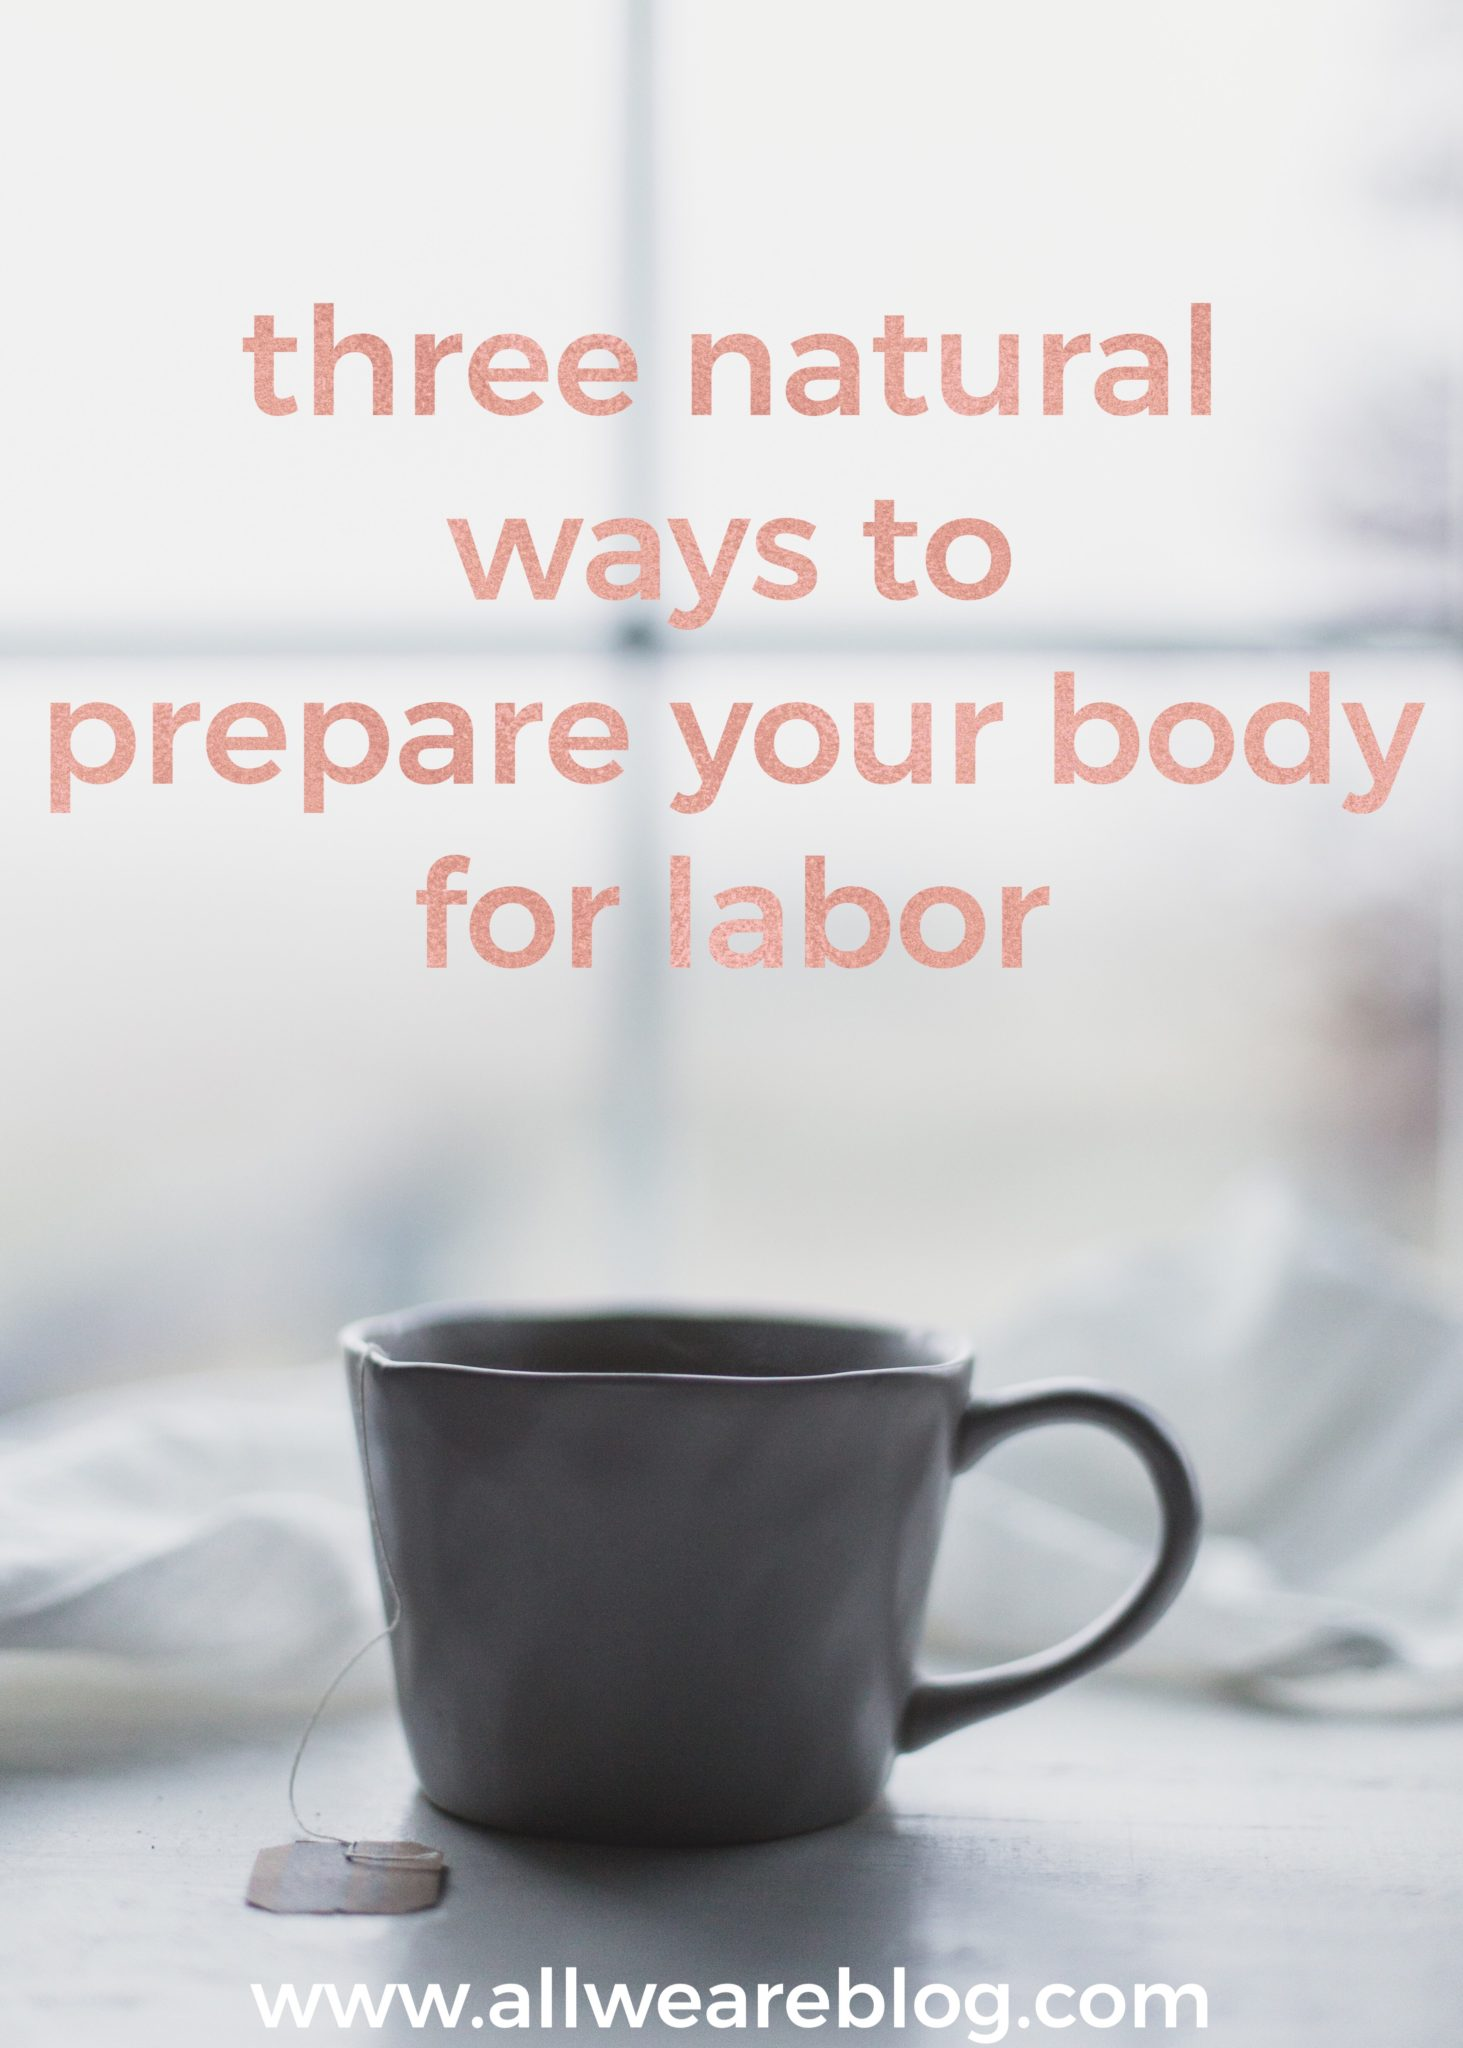 three natural ways to prepare your body for labor